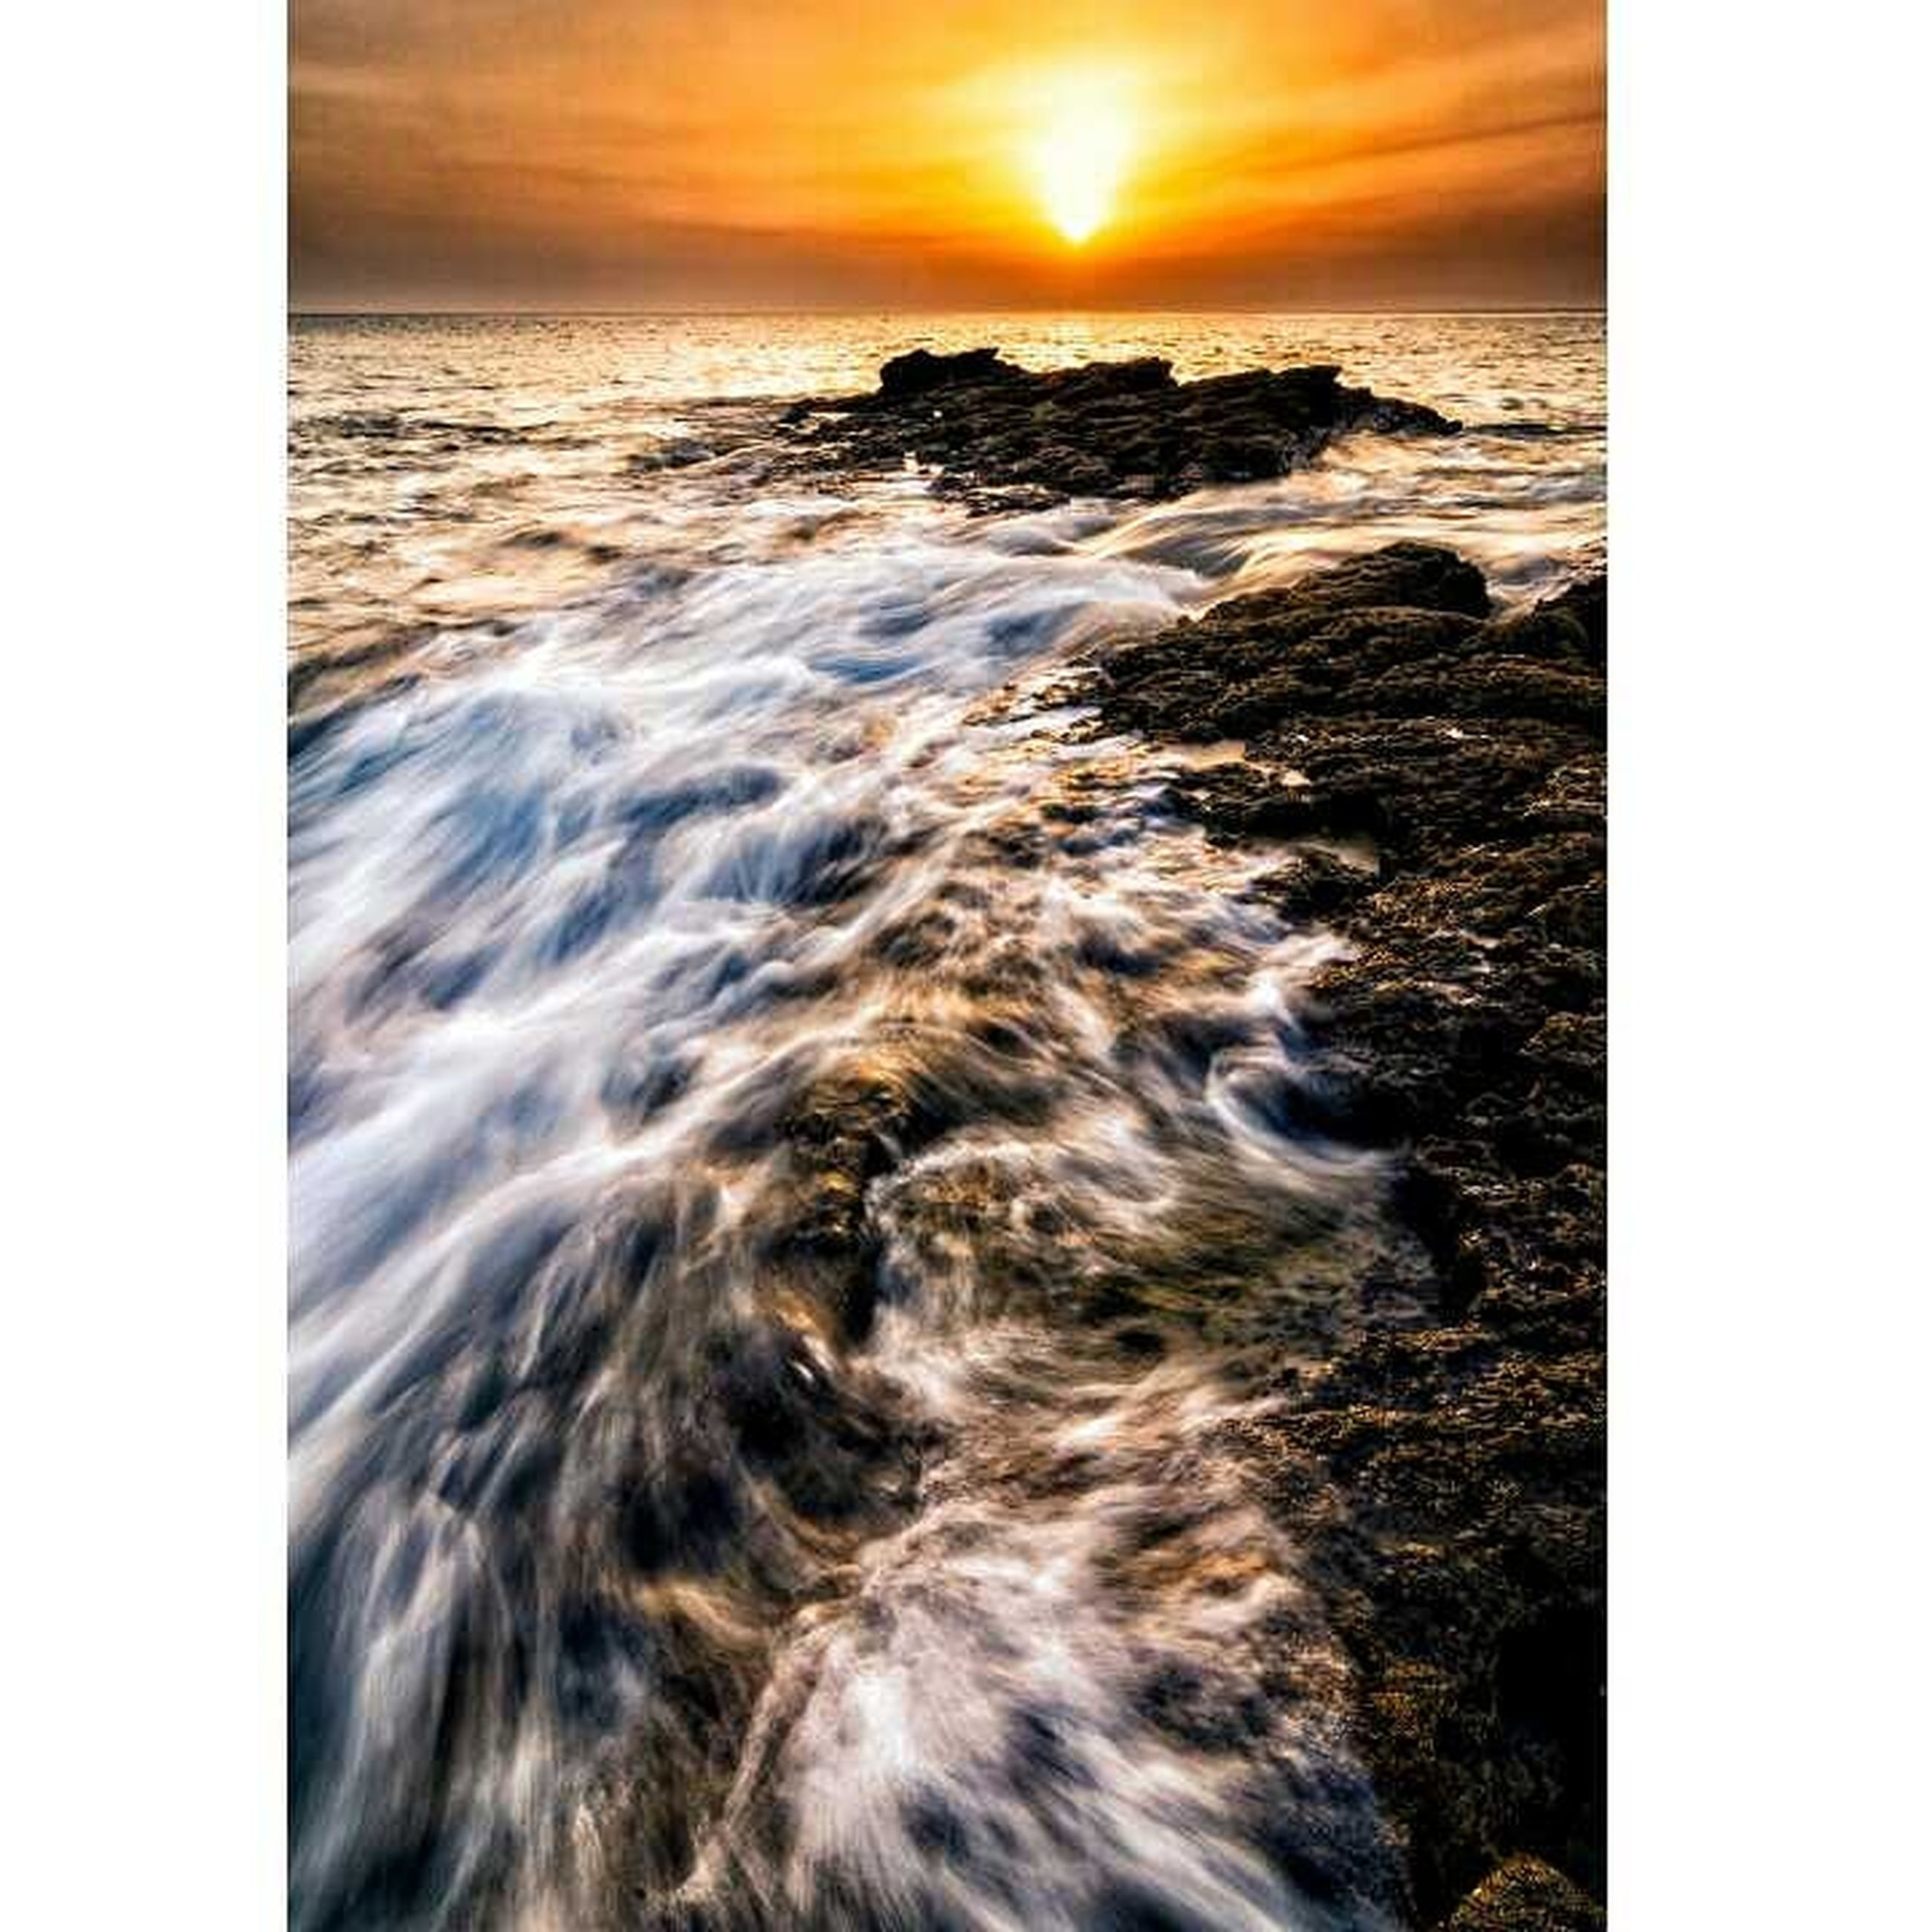 sea, water, motion, sky, sunset, beach, nature, land, scenics - nature, wave, rock, beauty in nature, rock - object, auto post production filter, sport, horizon over water, cloud - sky, horizon, solid, no people, outdoors, sun, power in nature